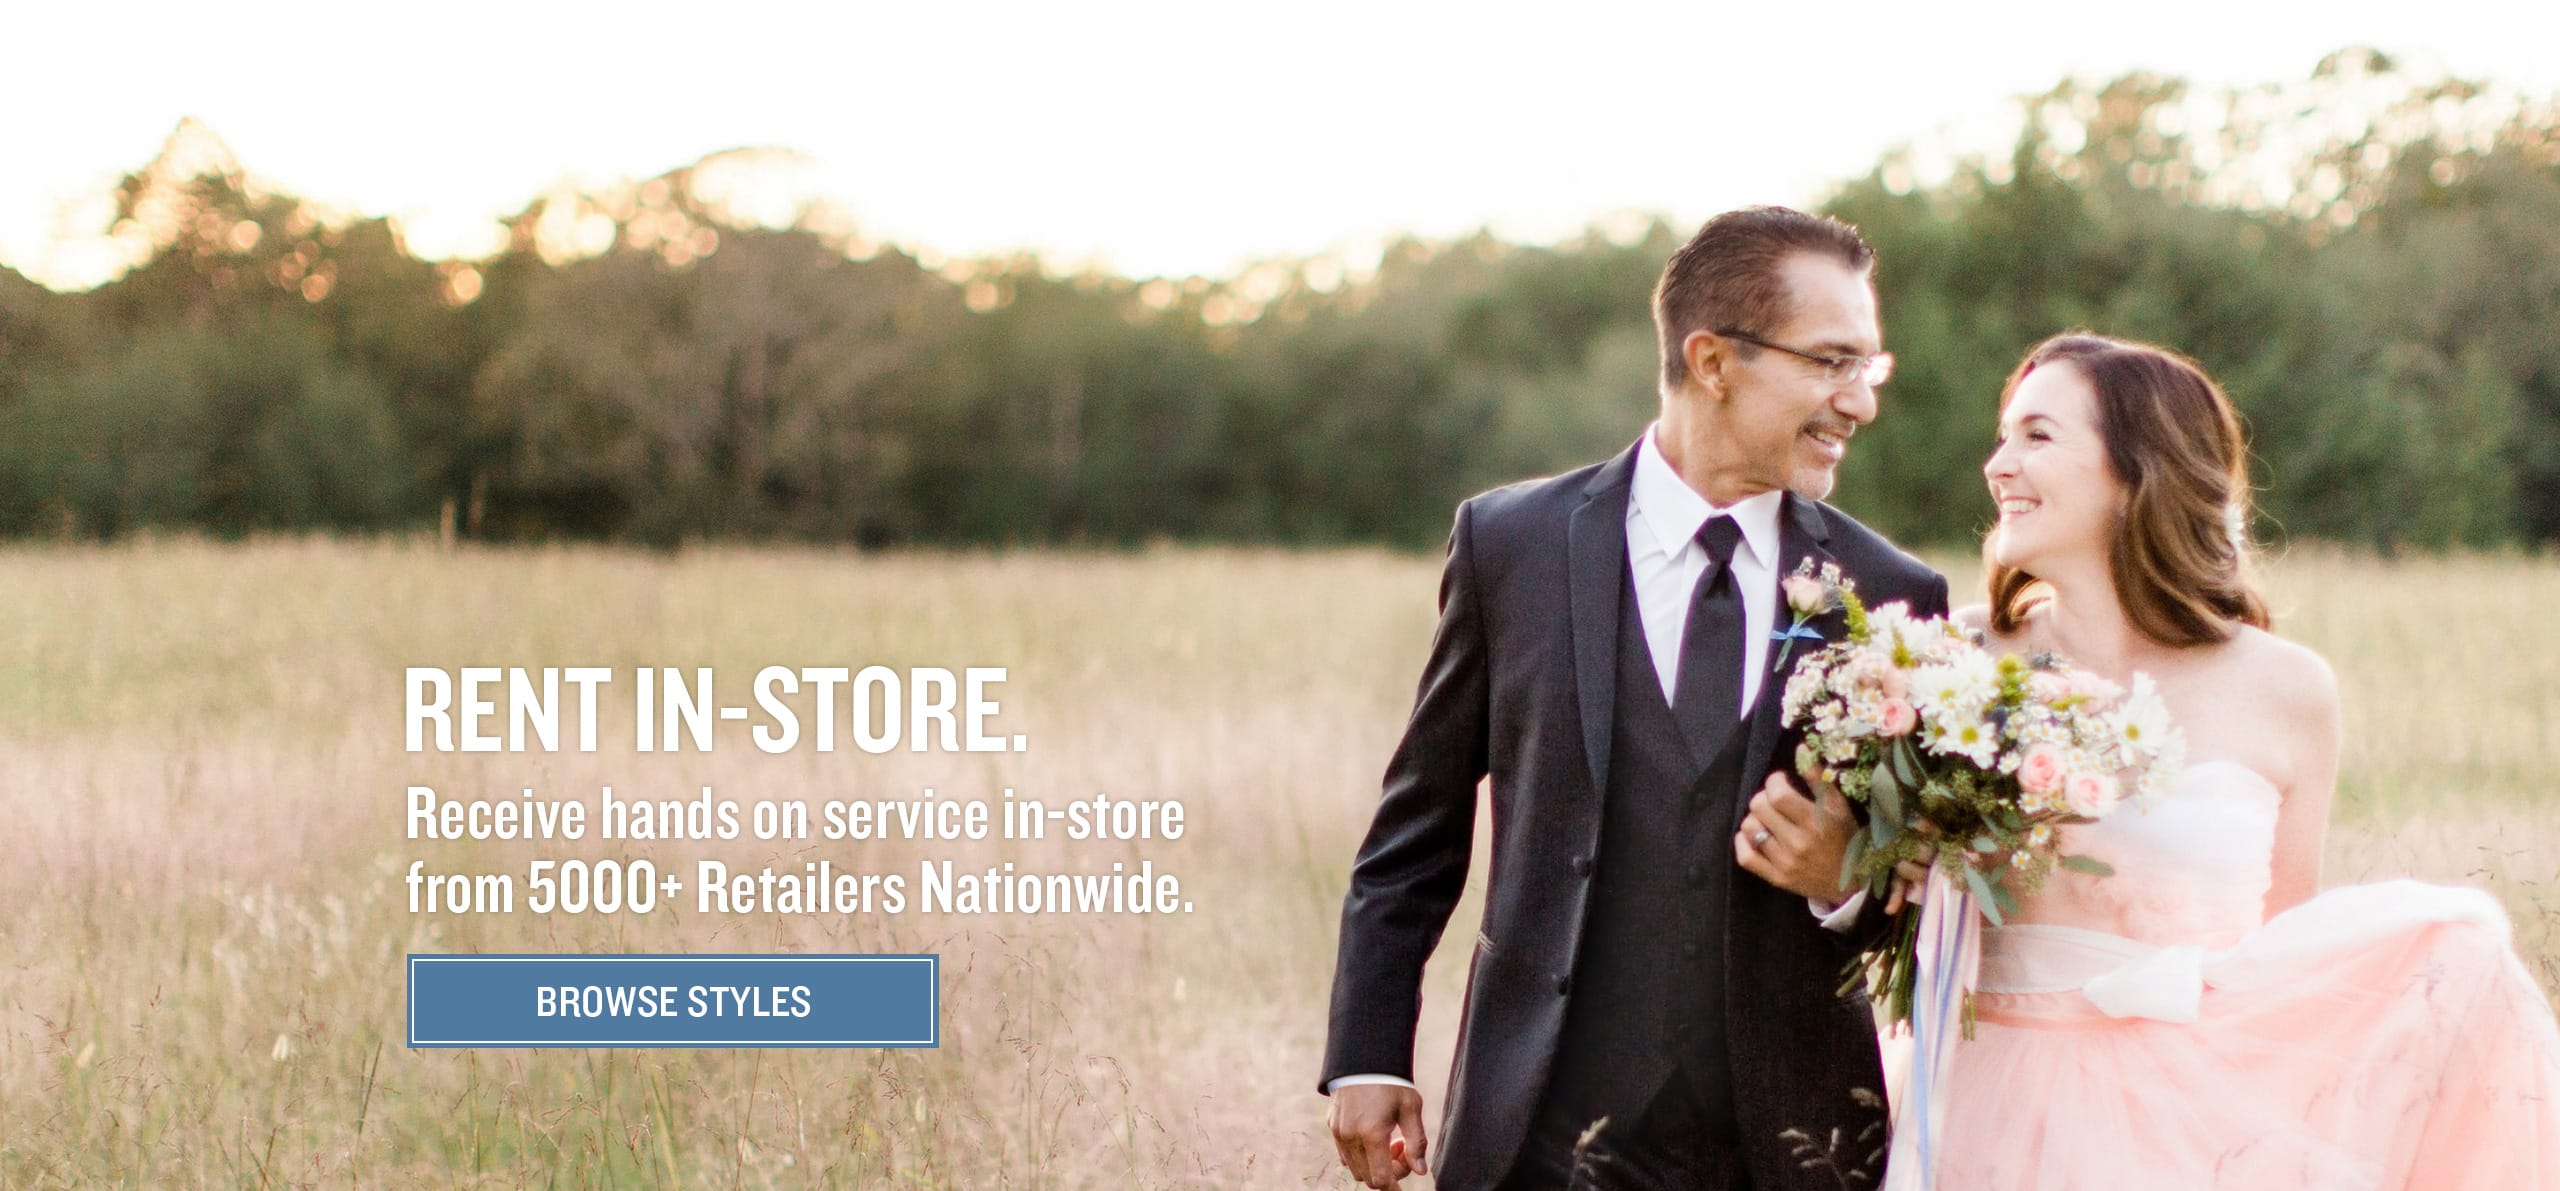 Browse our selection of tuxedos and suits for rental in-store.